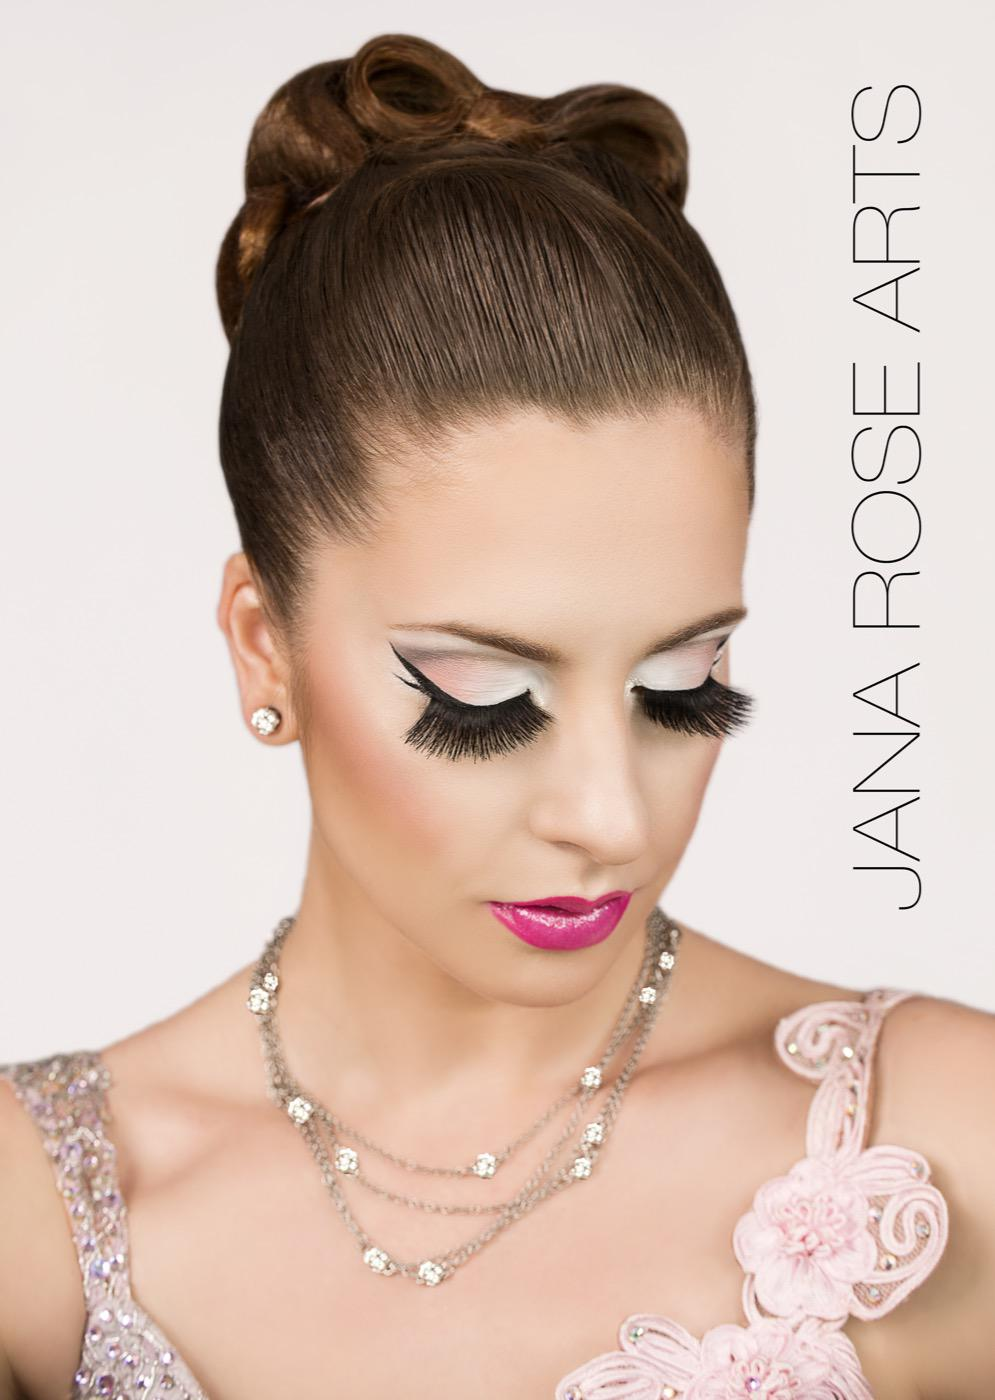 Photo of Jana in full dancesport hair and makeup